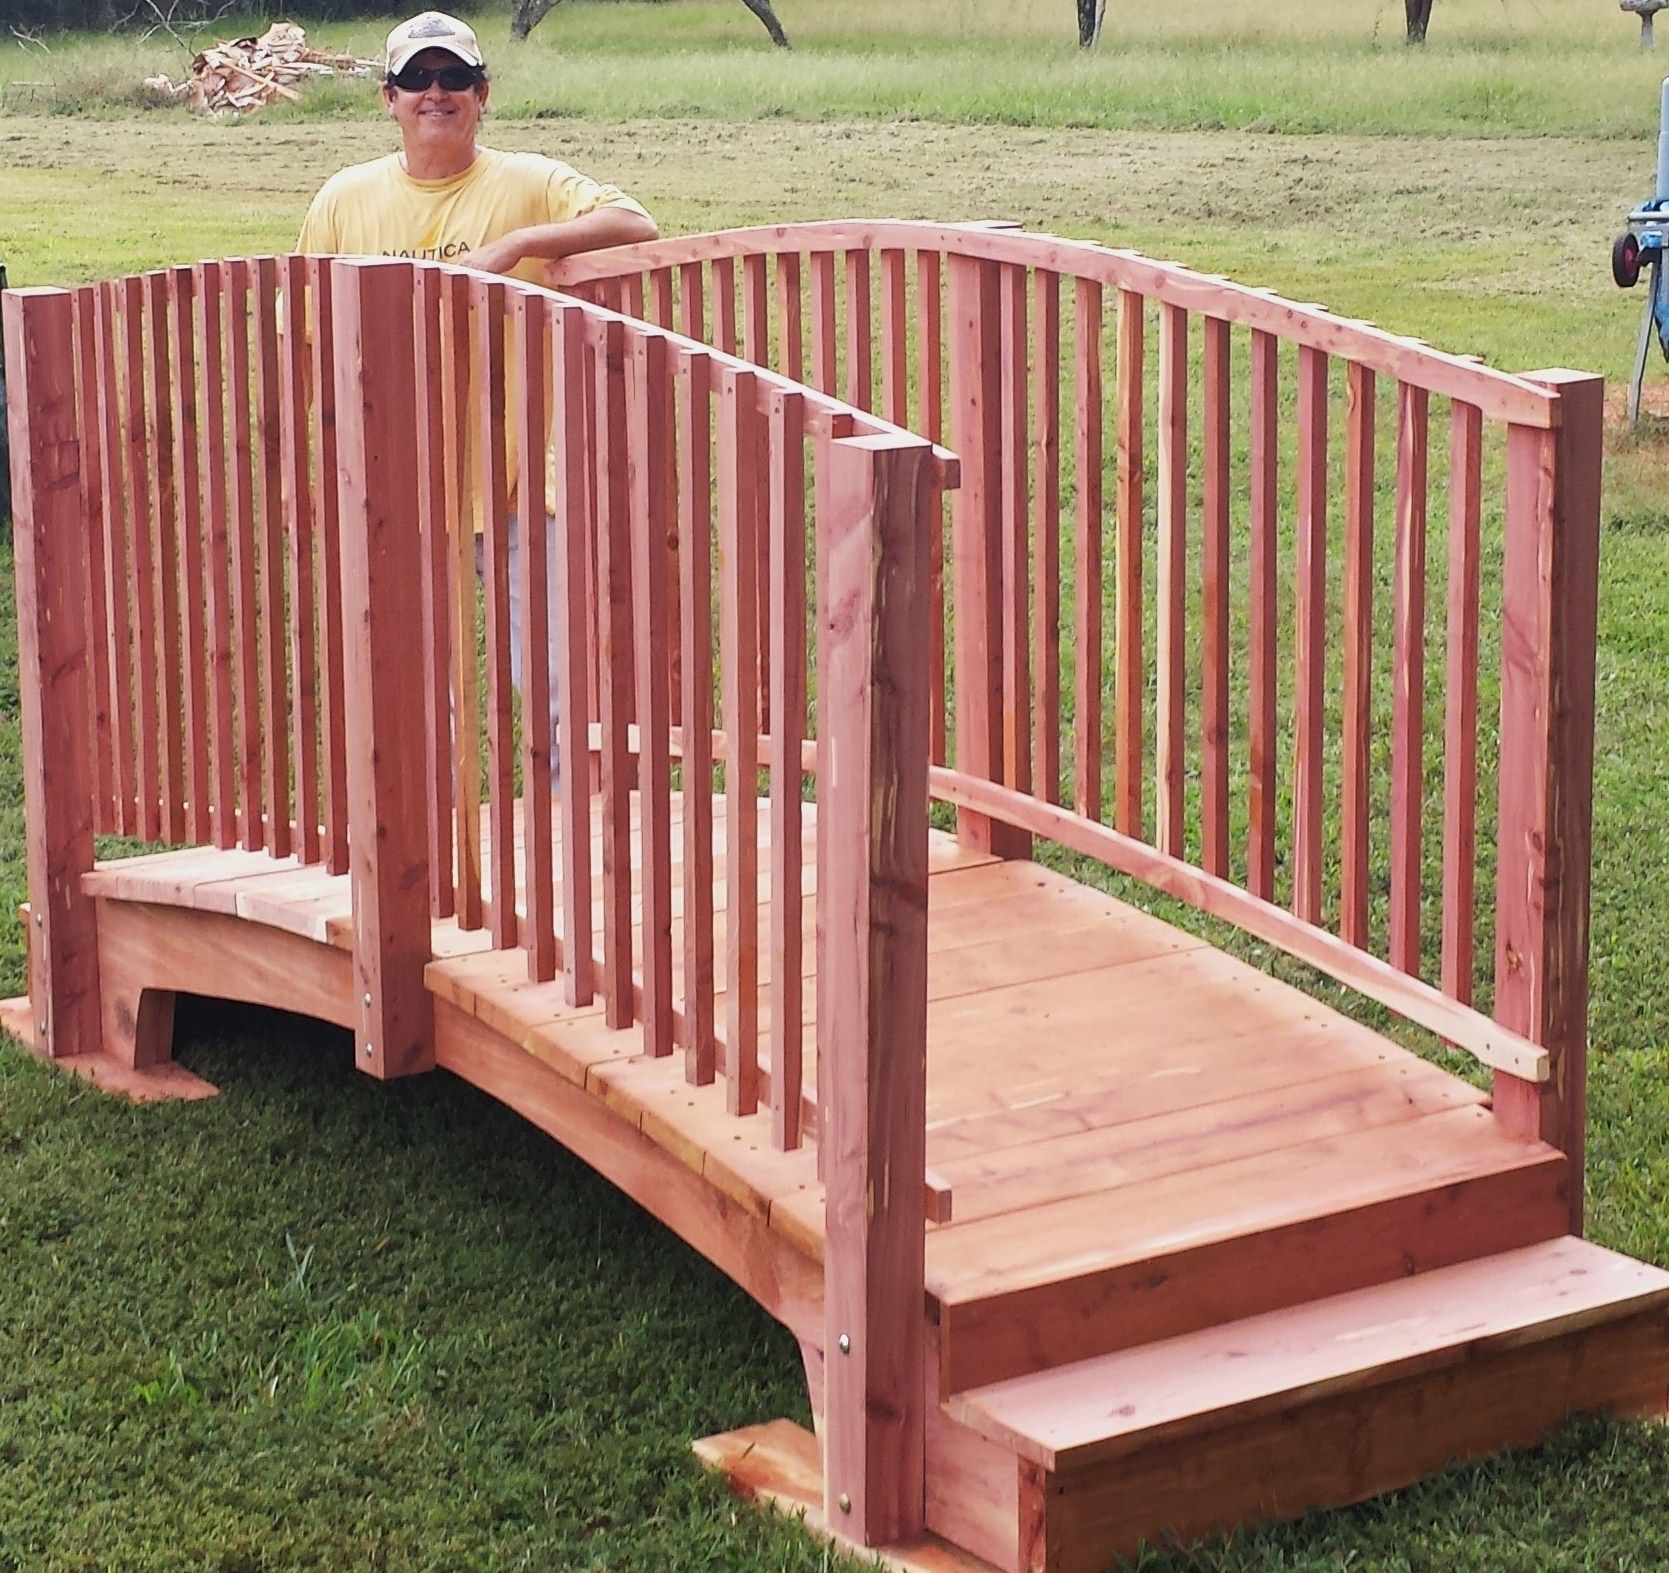 Best 12 Ft Spindle Rail Bridge To Go Over A Pool In Tn Diy 400 x 300